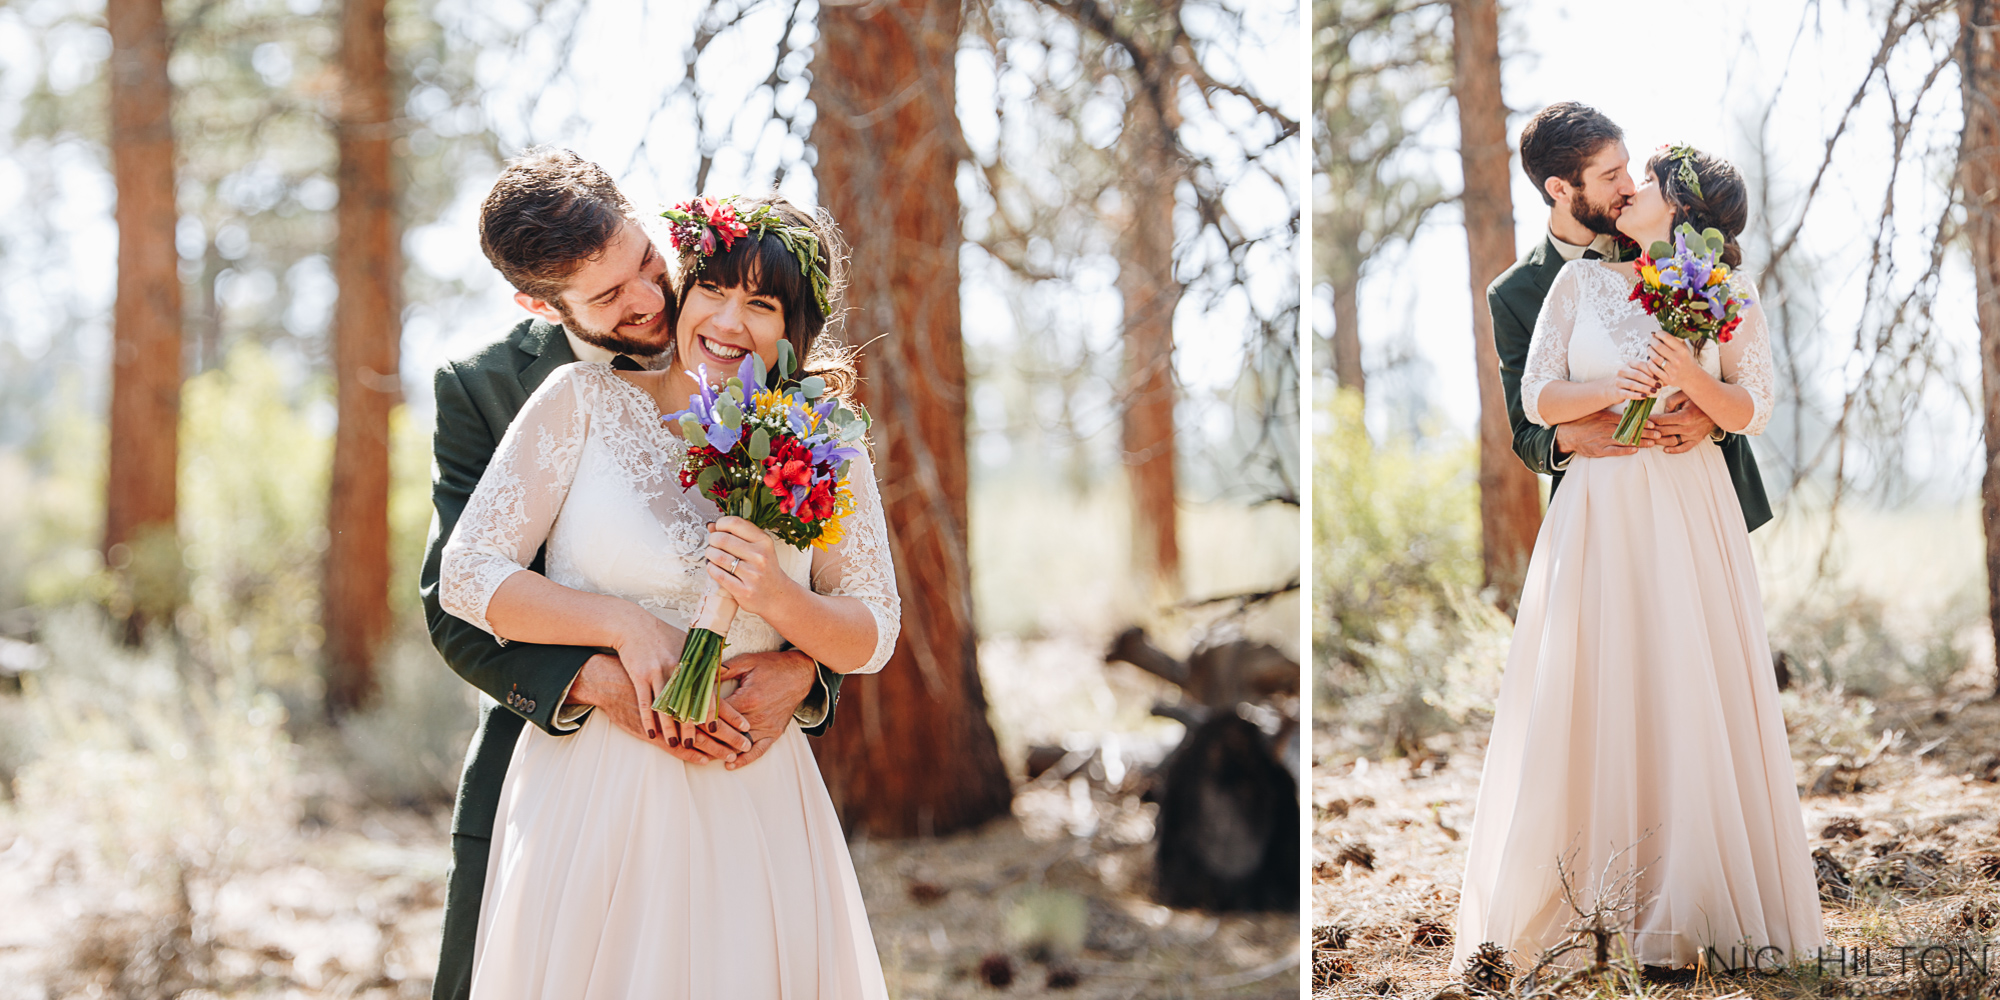 Mono-lake-forest-bride-and-groom-photos.jpg